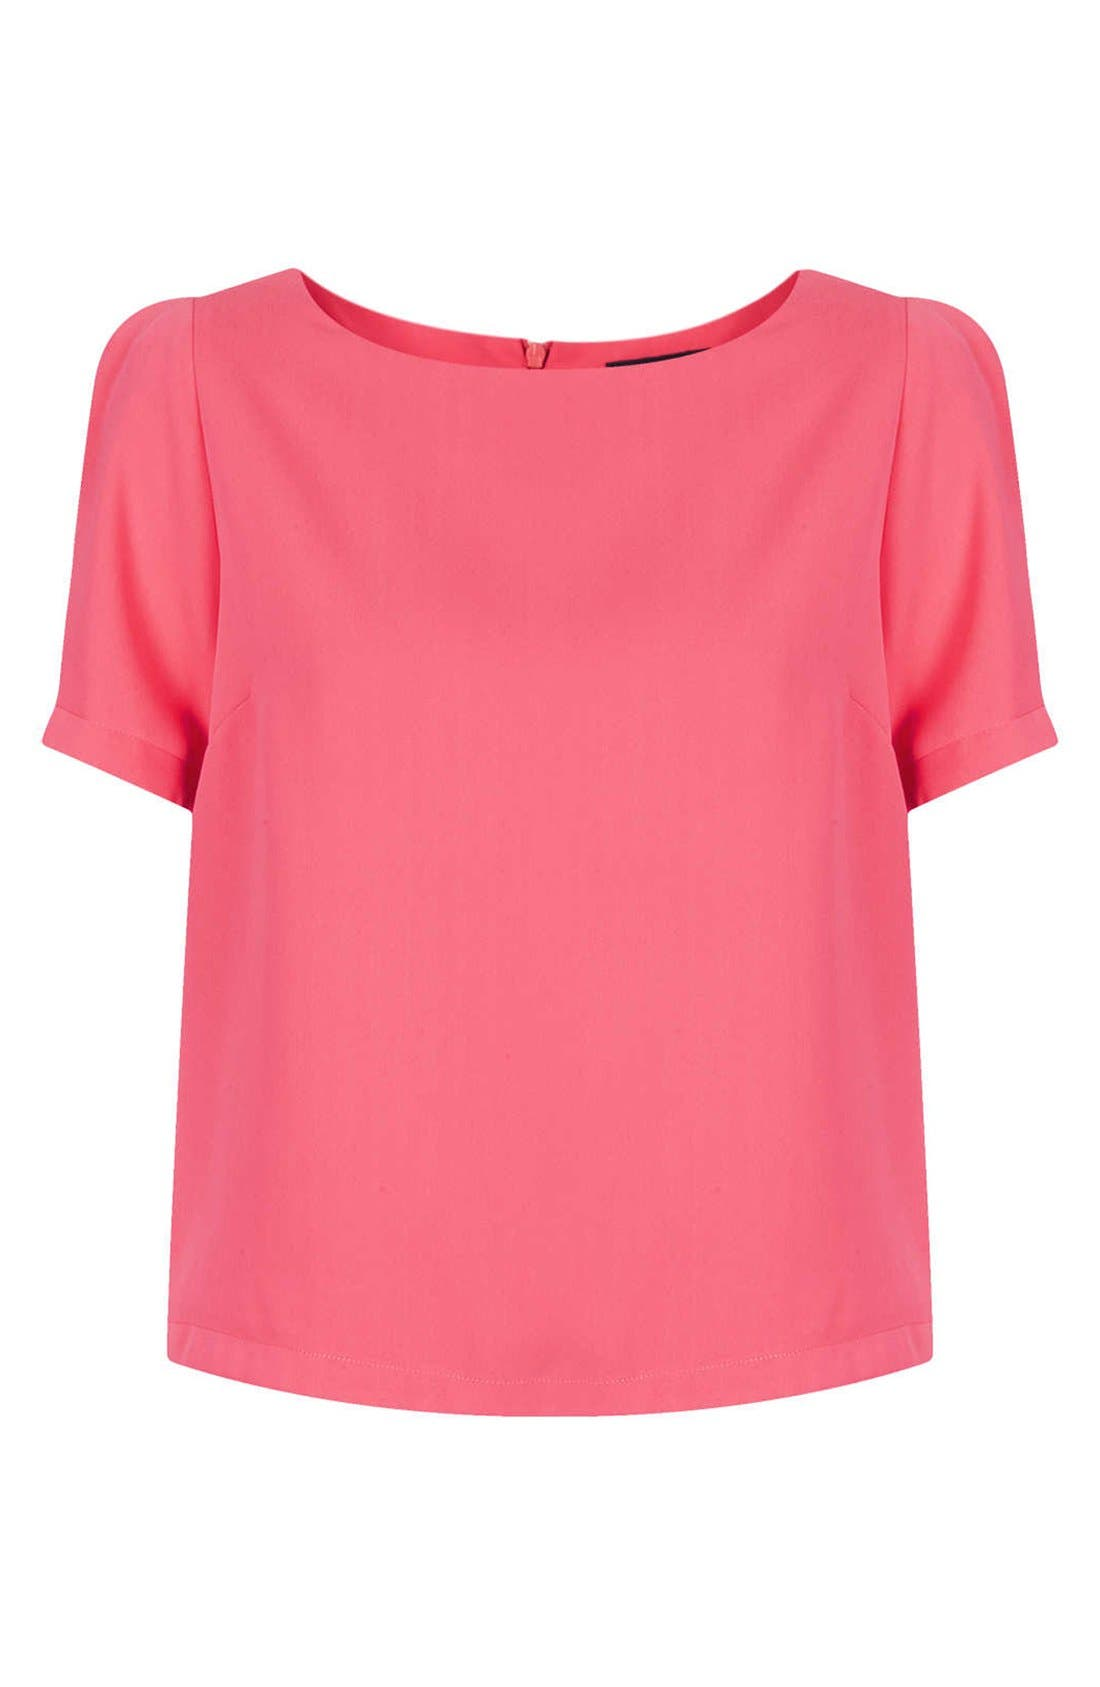 TOPSHOP,                             Tea Blouse,                             Alternate thumbnail 2, color,                             650